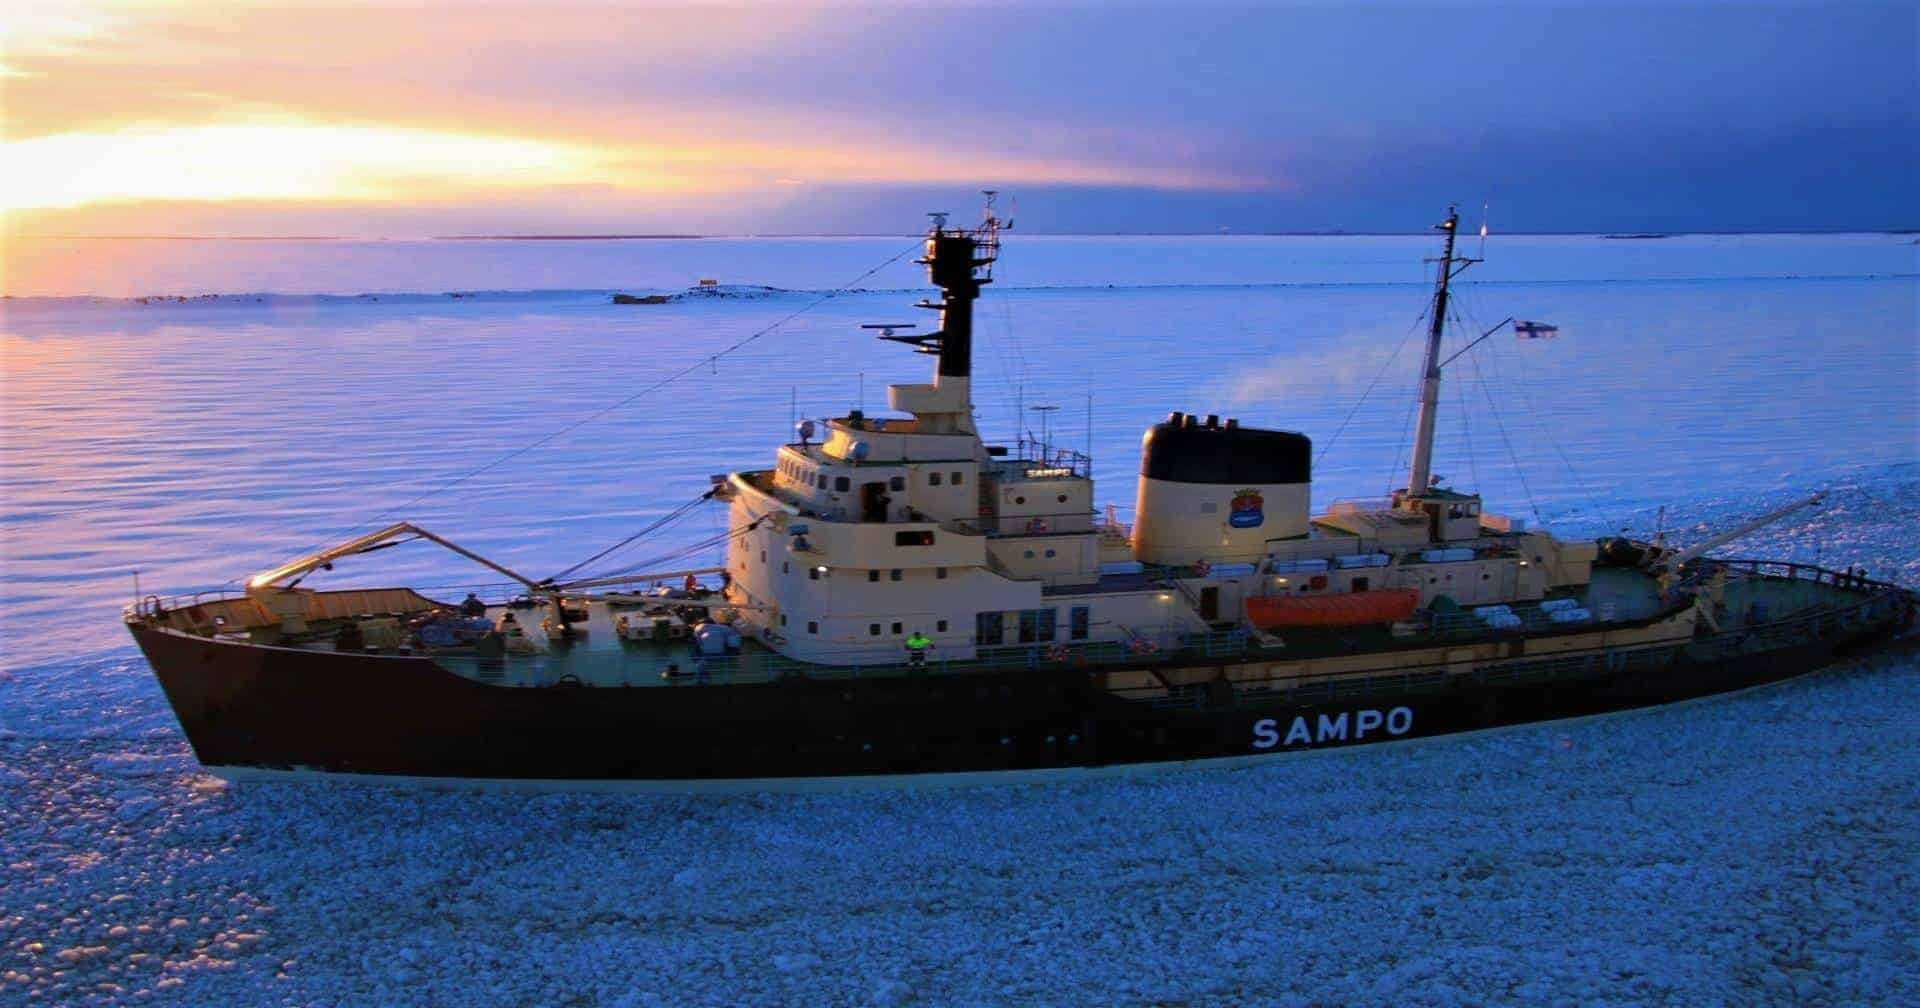 Icebreaker Sampo in Port of Kemi